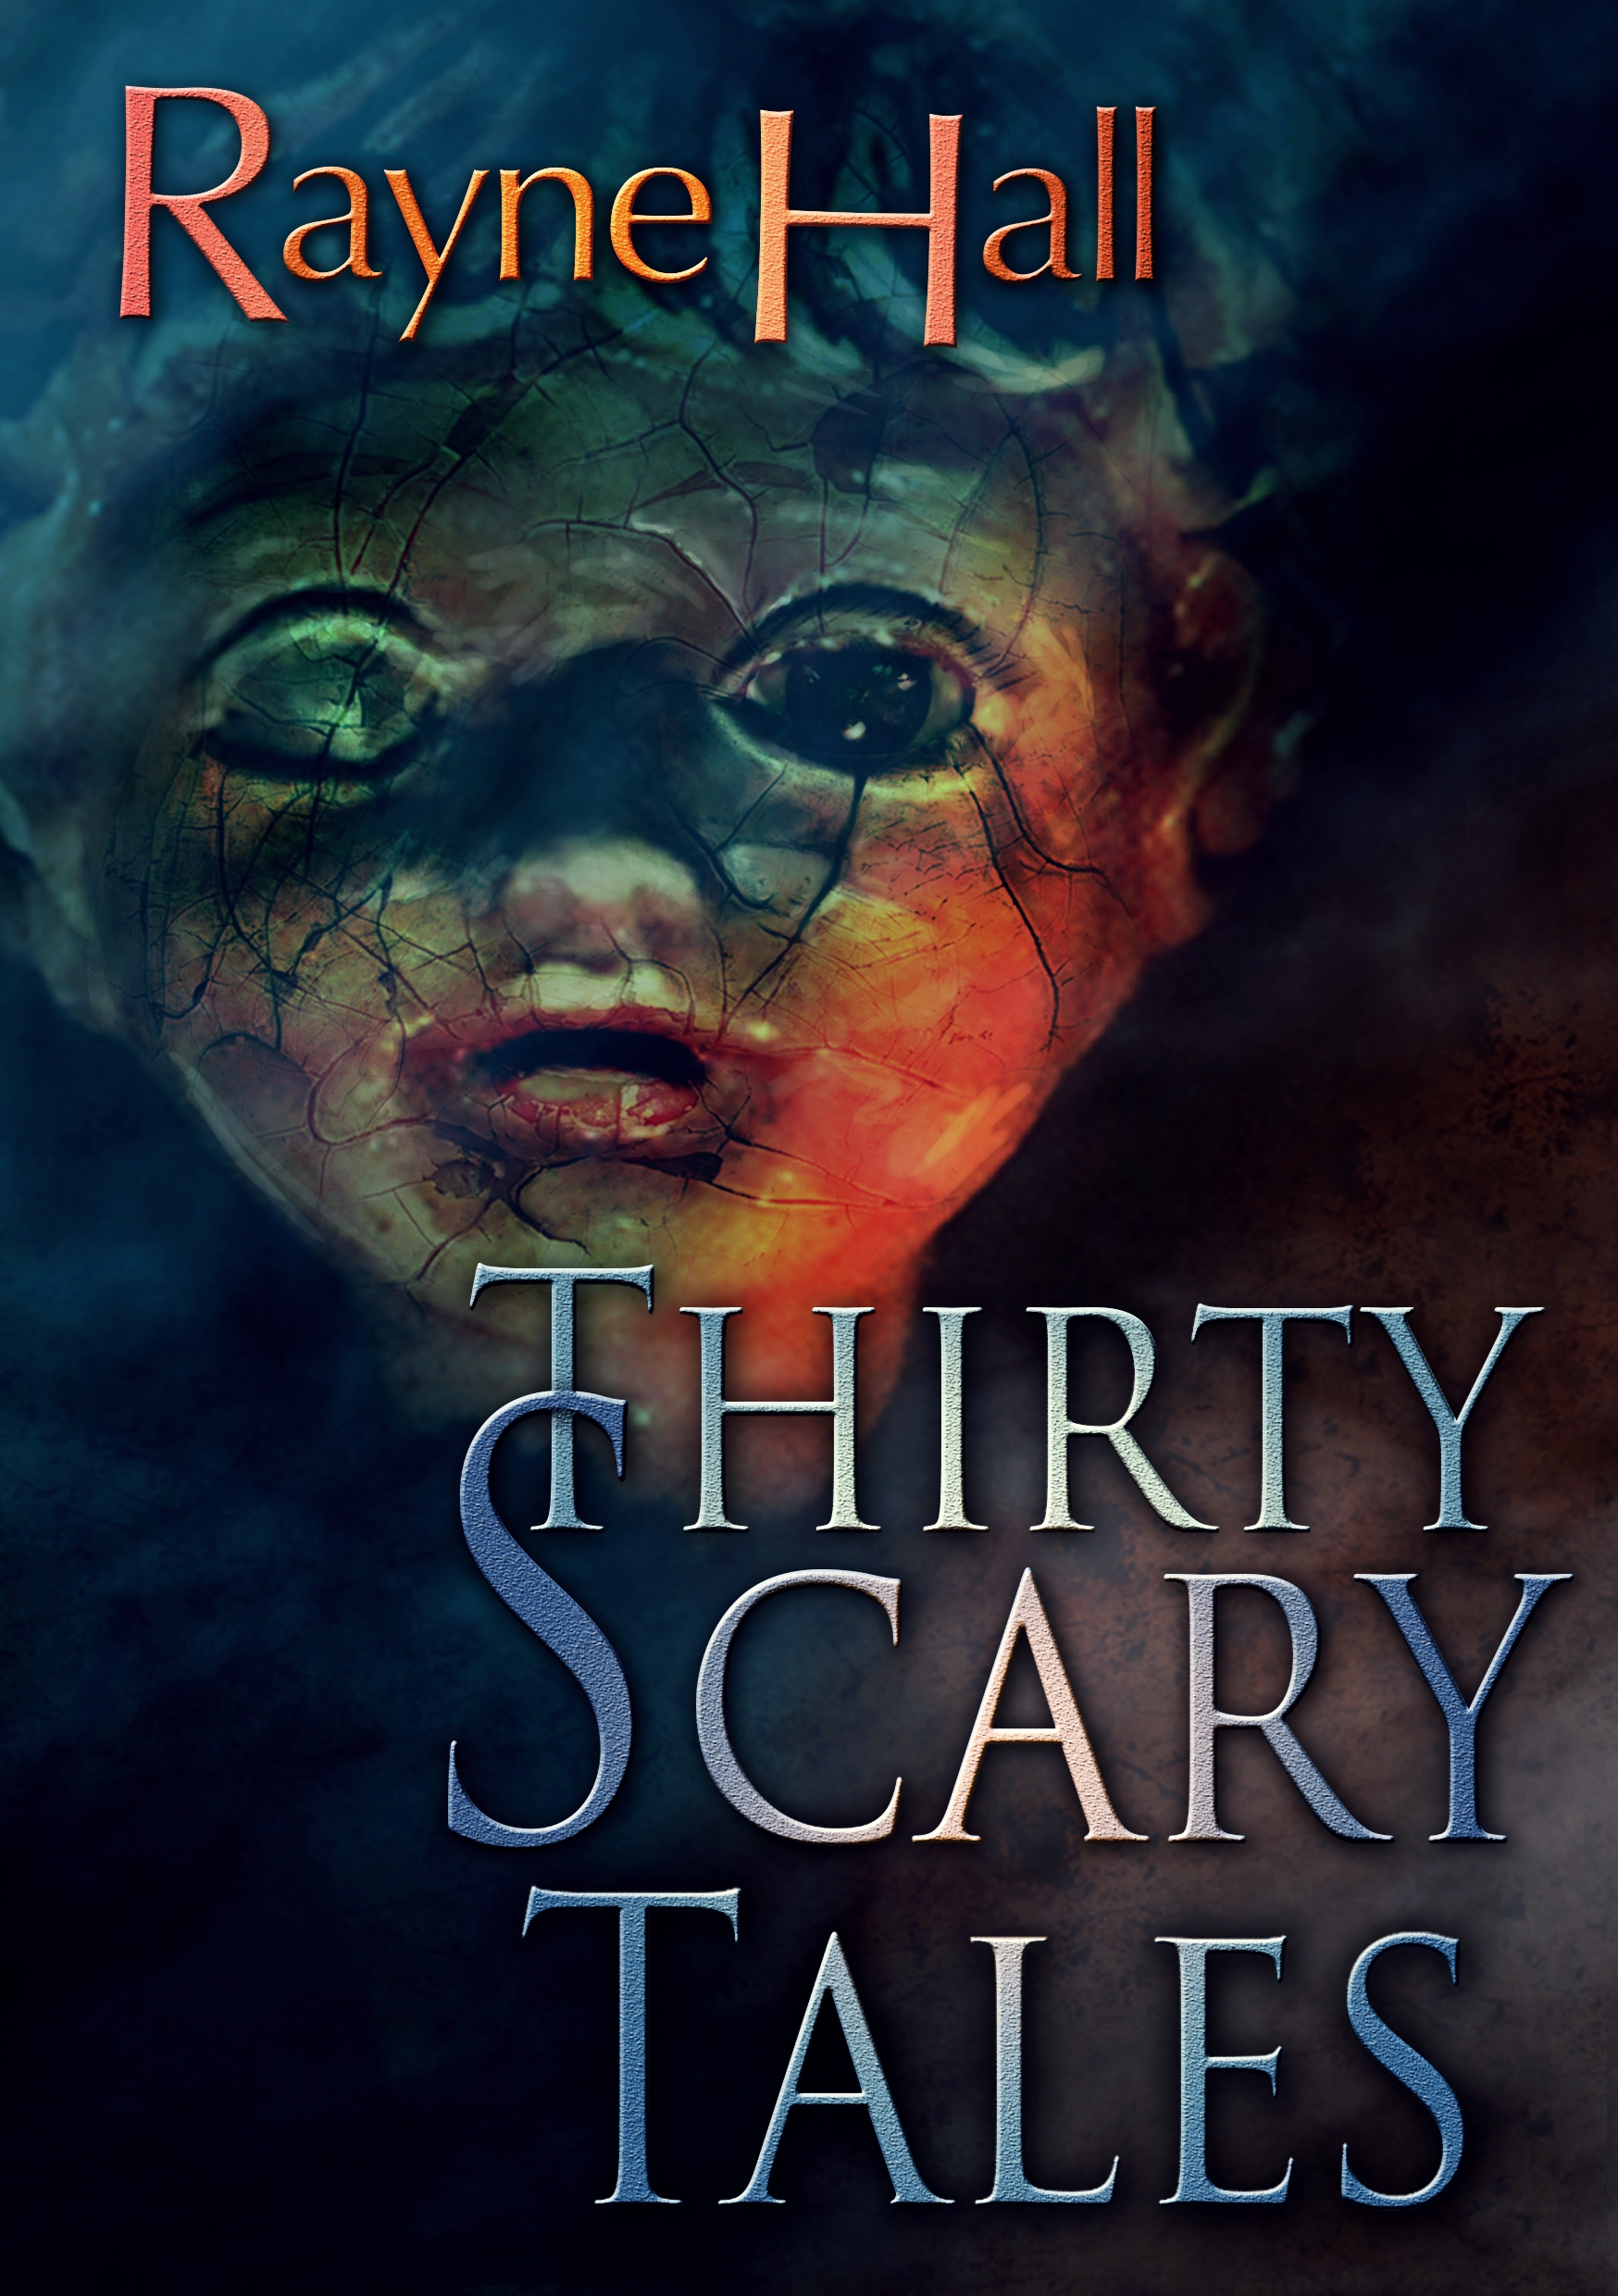 Book Review: Thirty Scary Tales by Rayne Hall